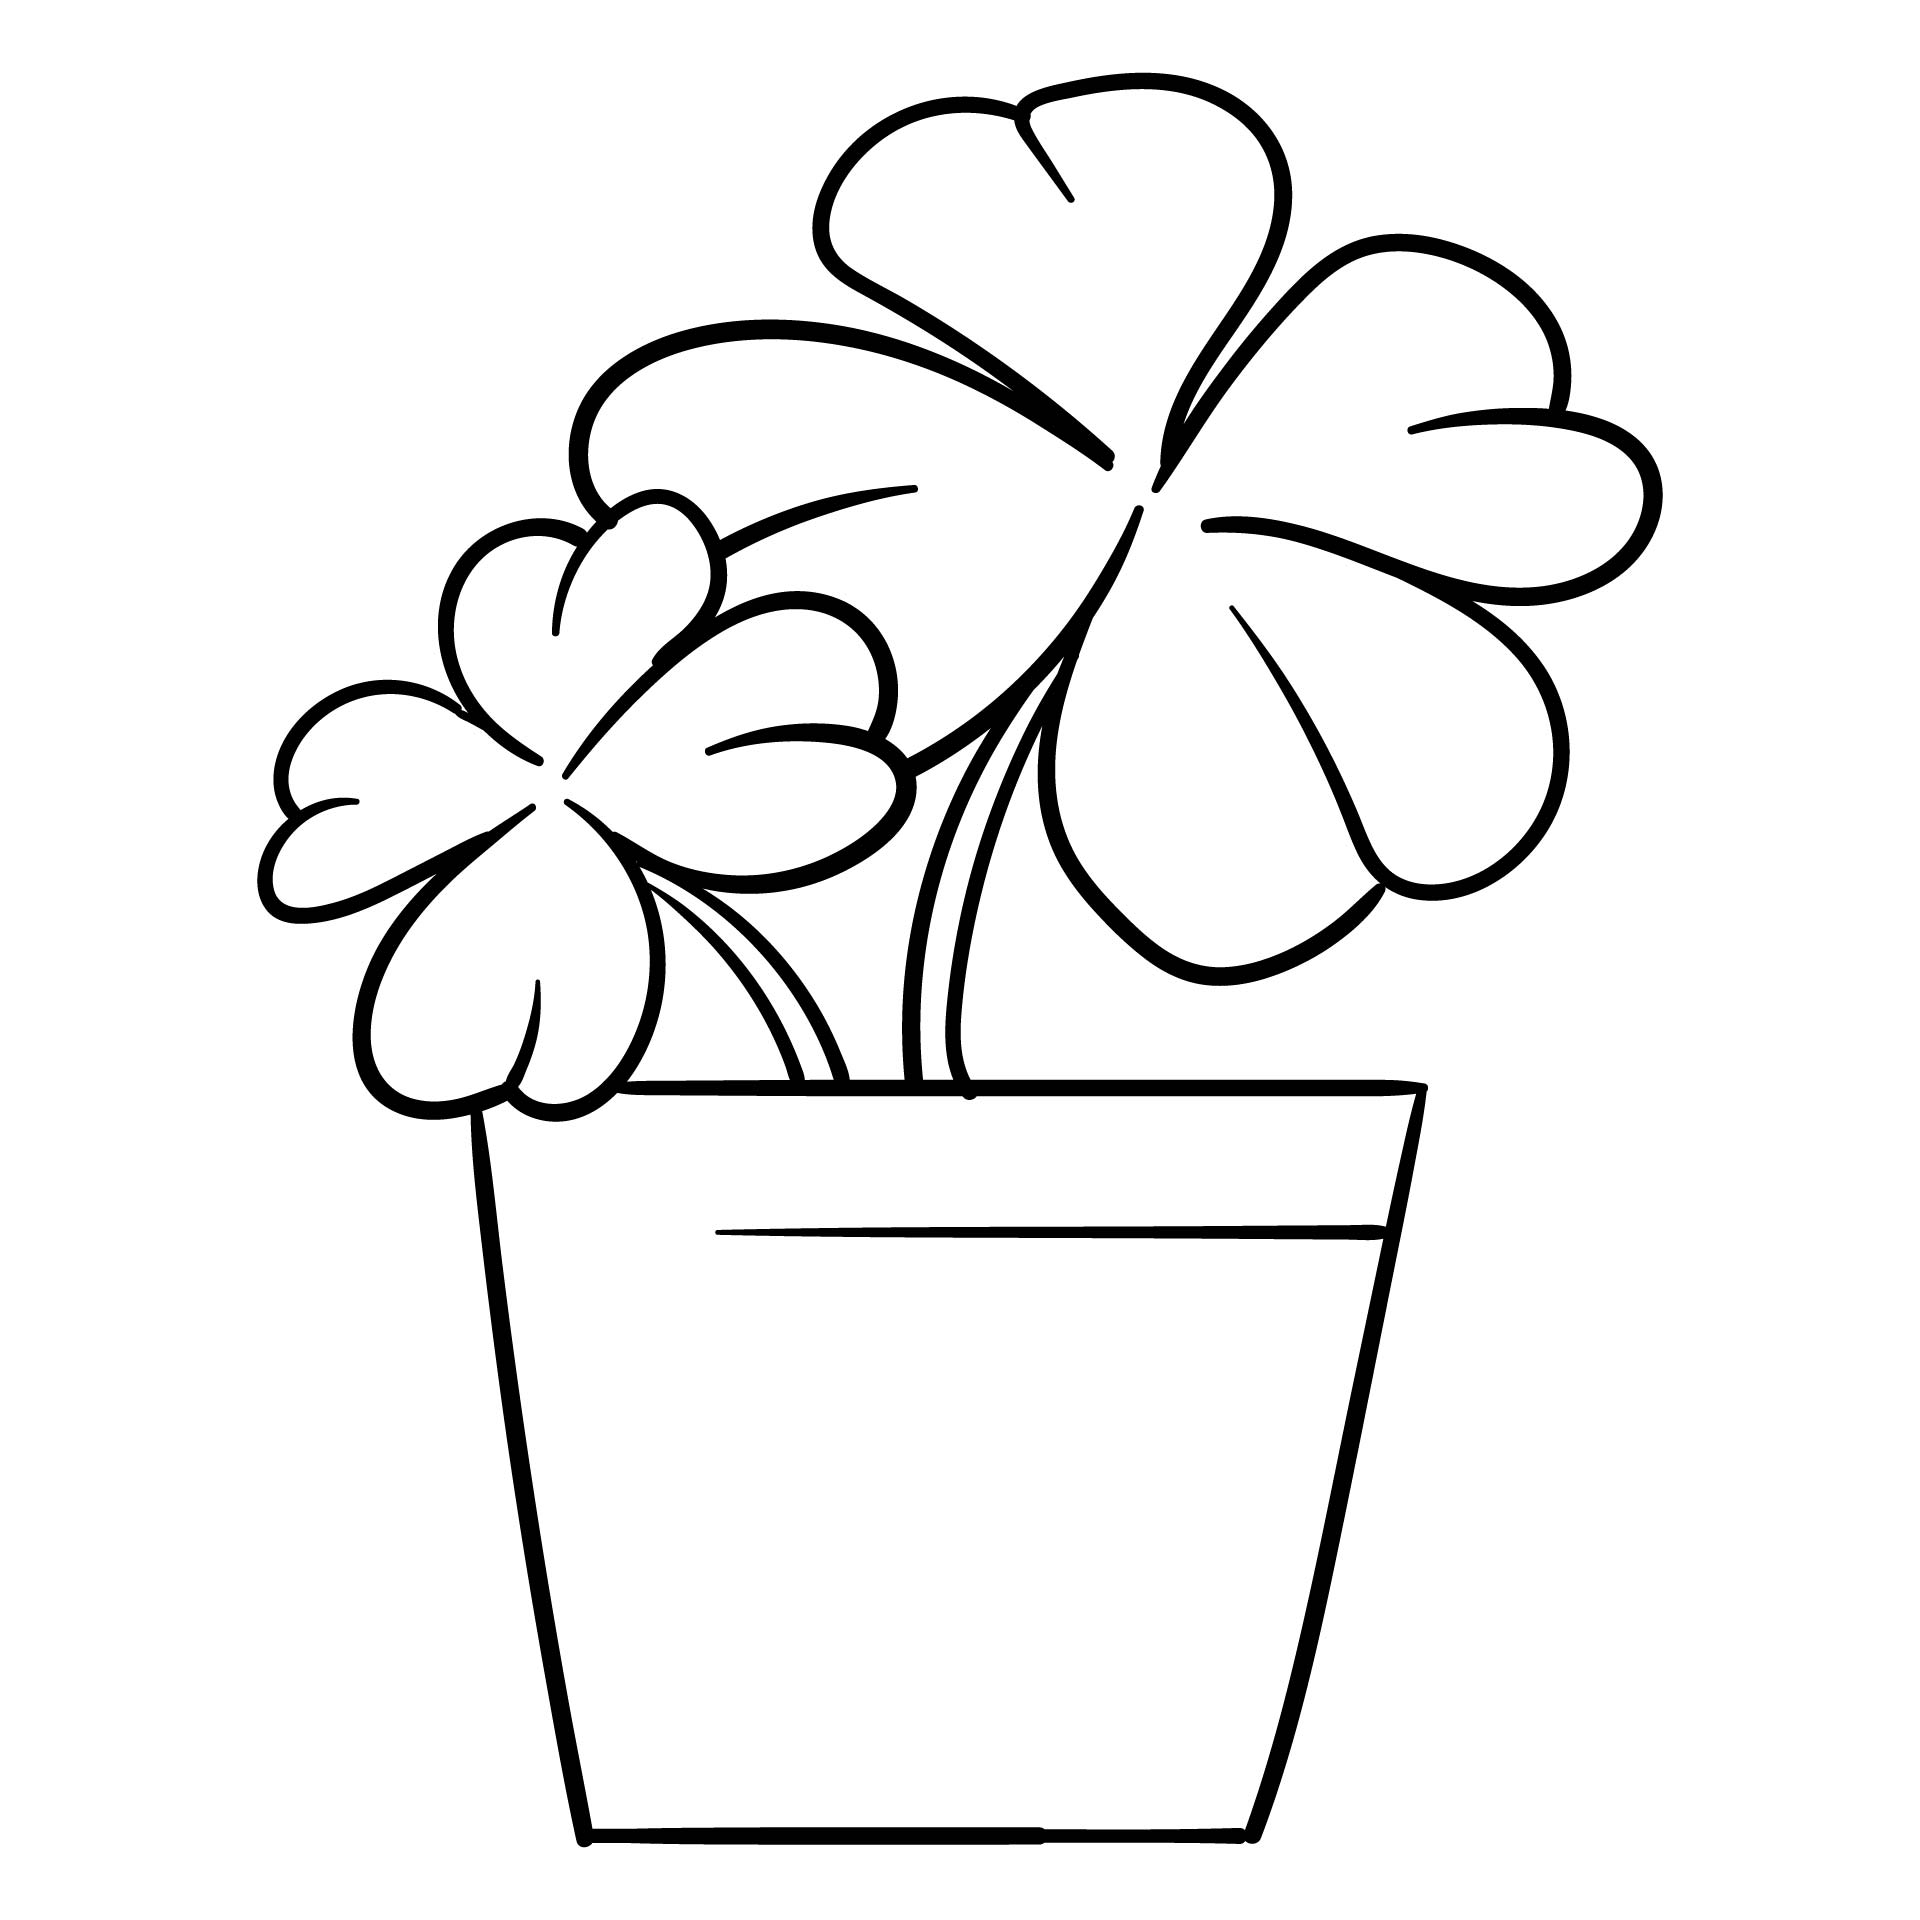 pics photos shamrock printable coloring image use it for coloring or